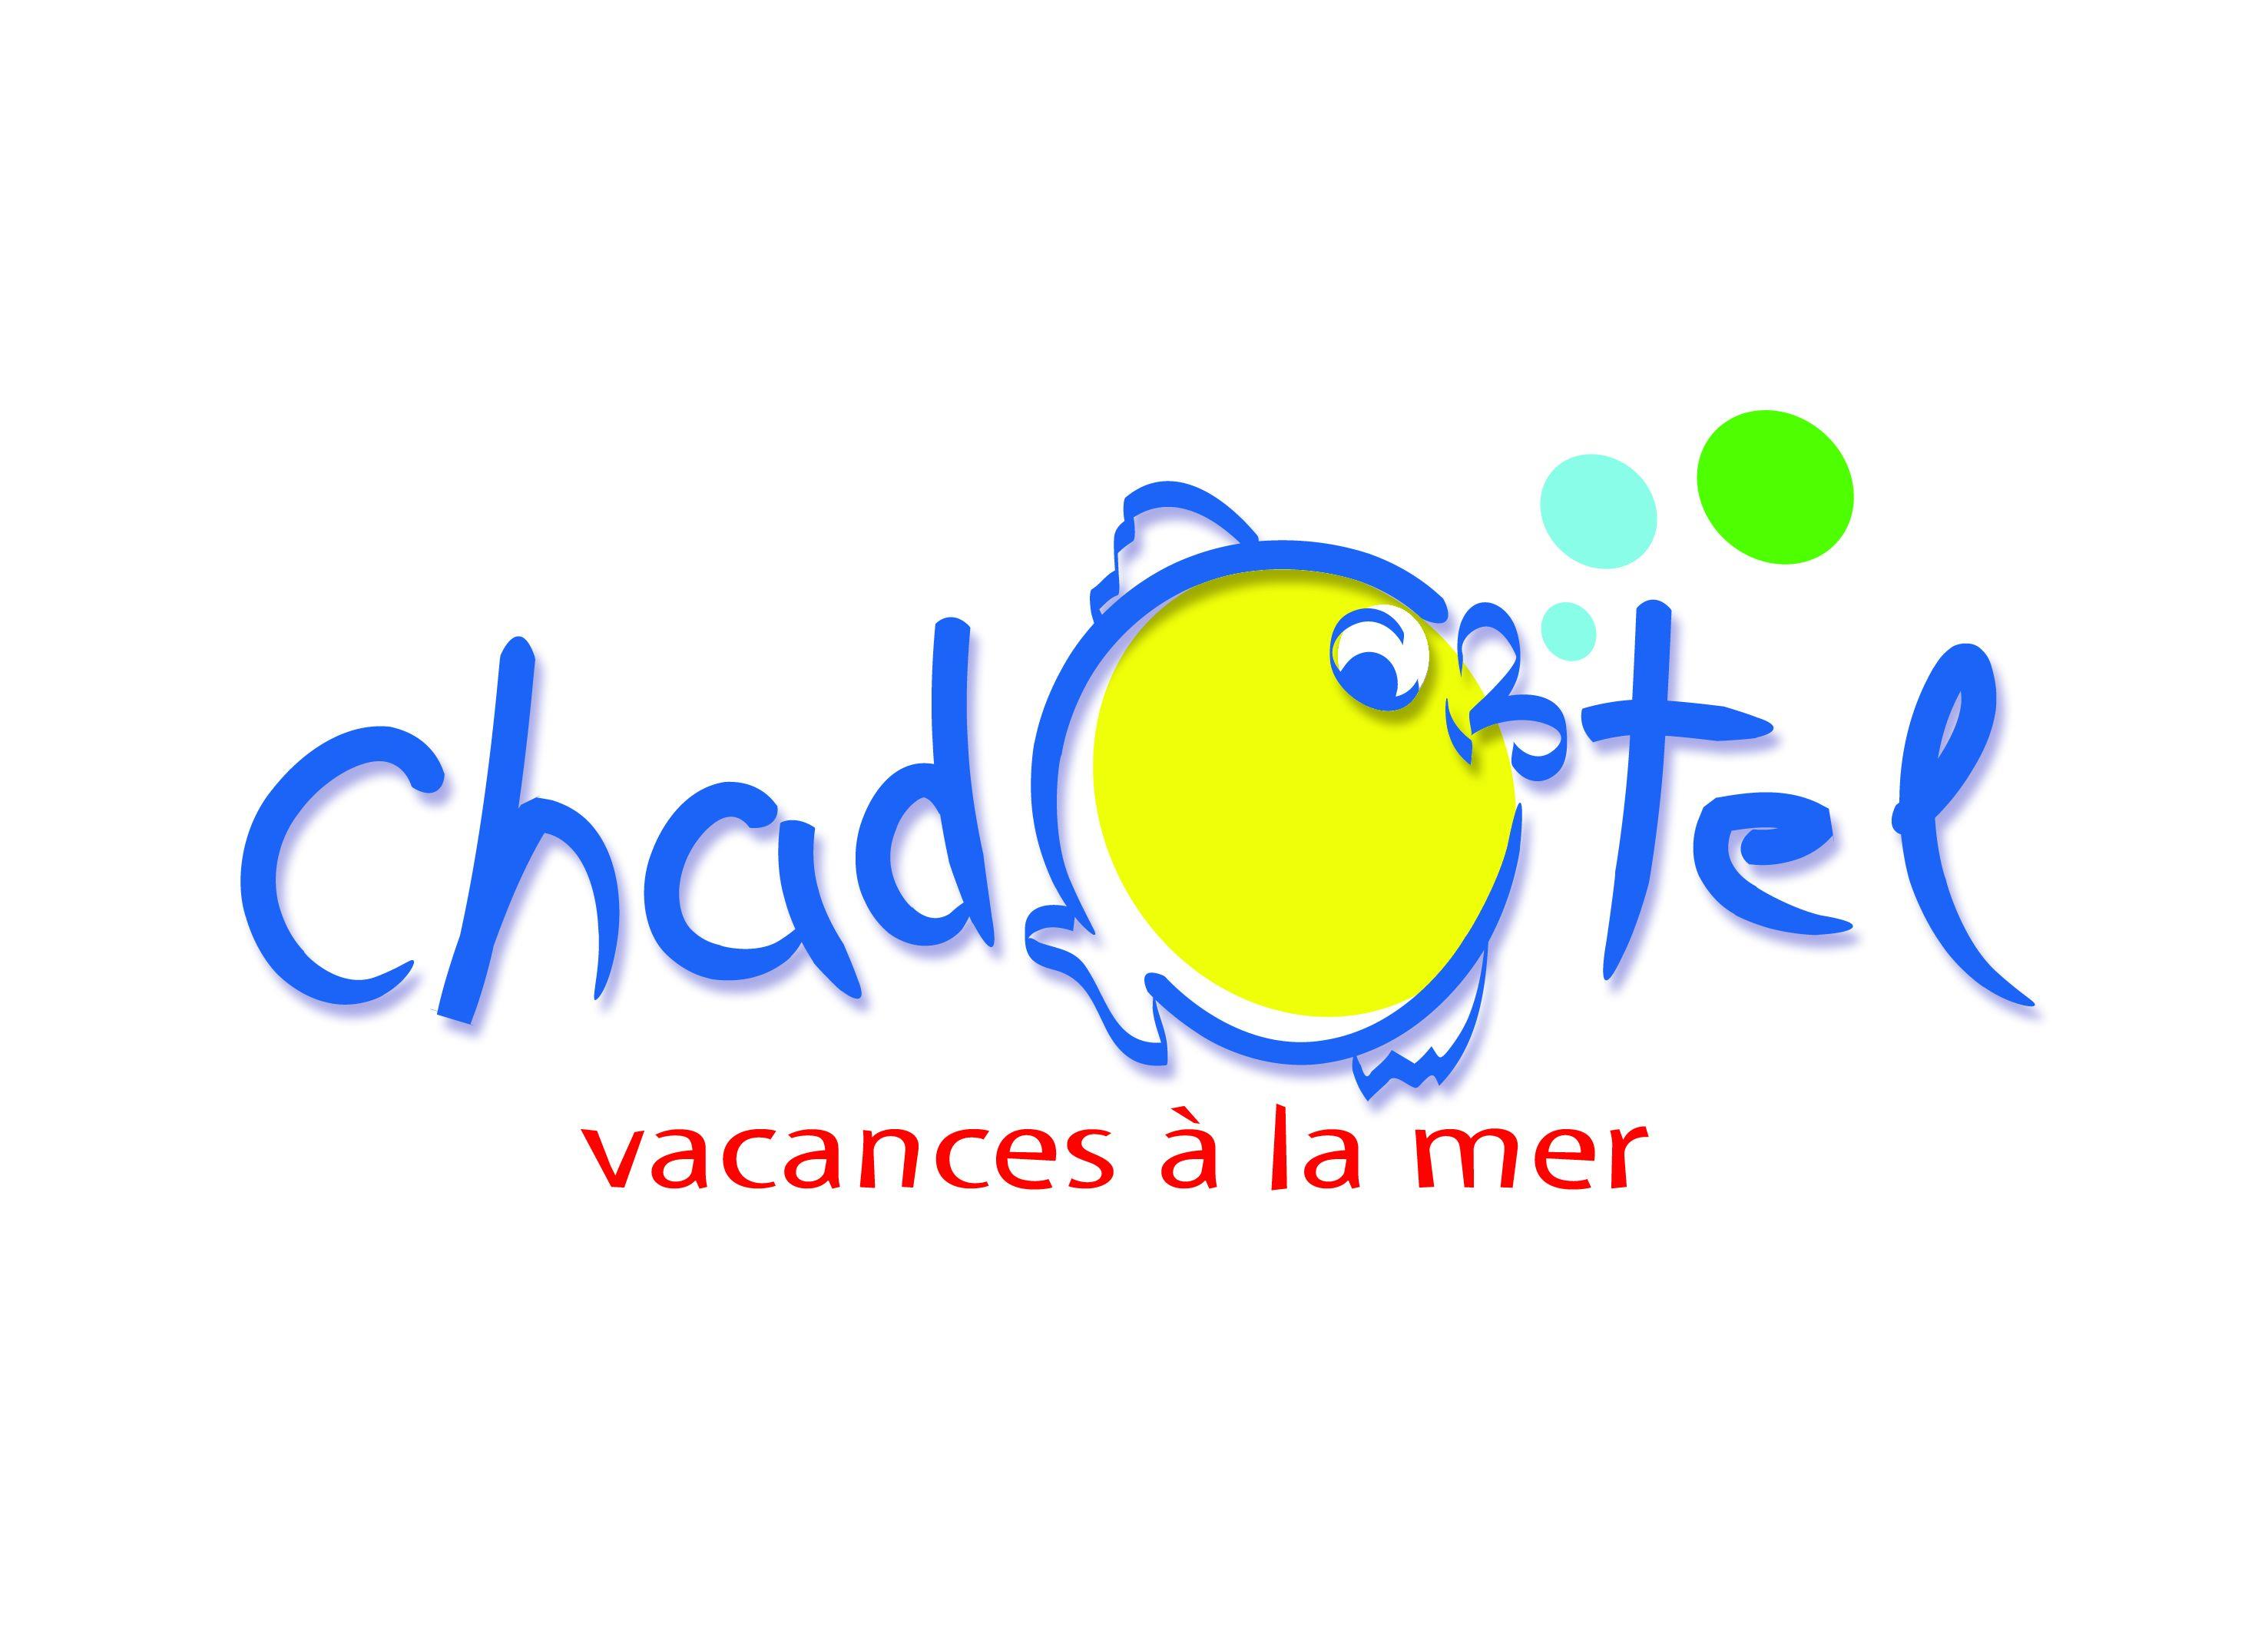 Propietario Chadotel International Erromardie - Saint Jean de Luz